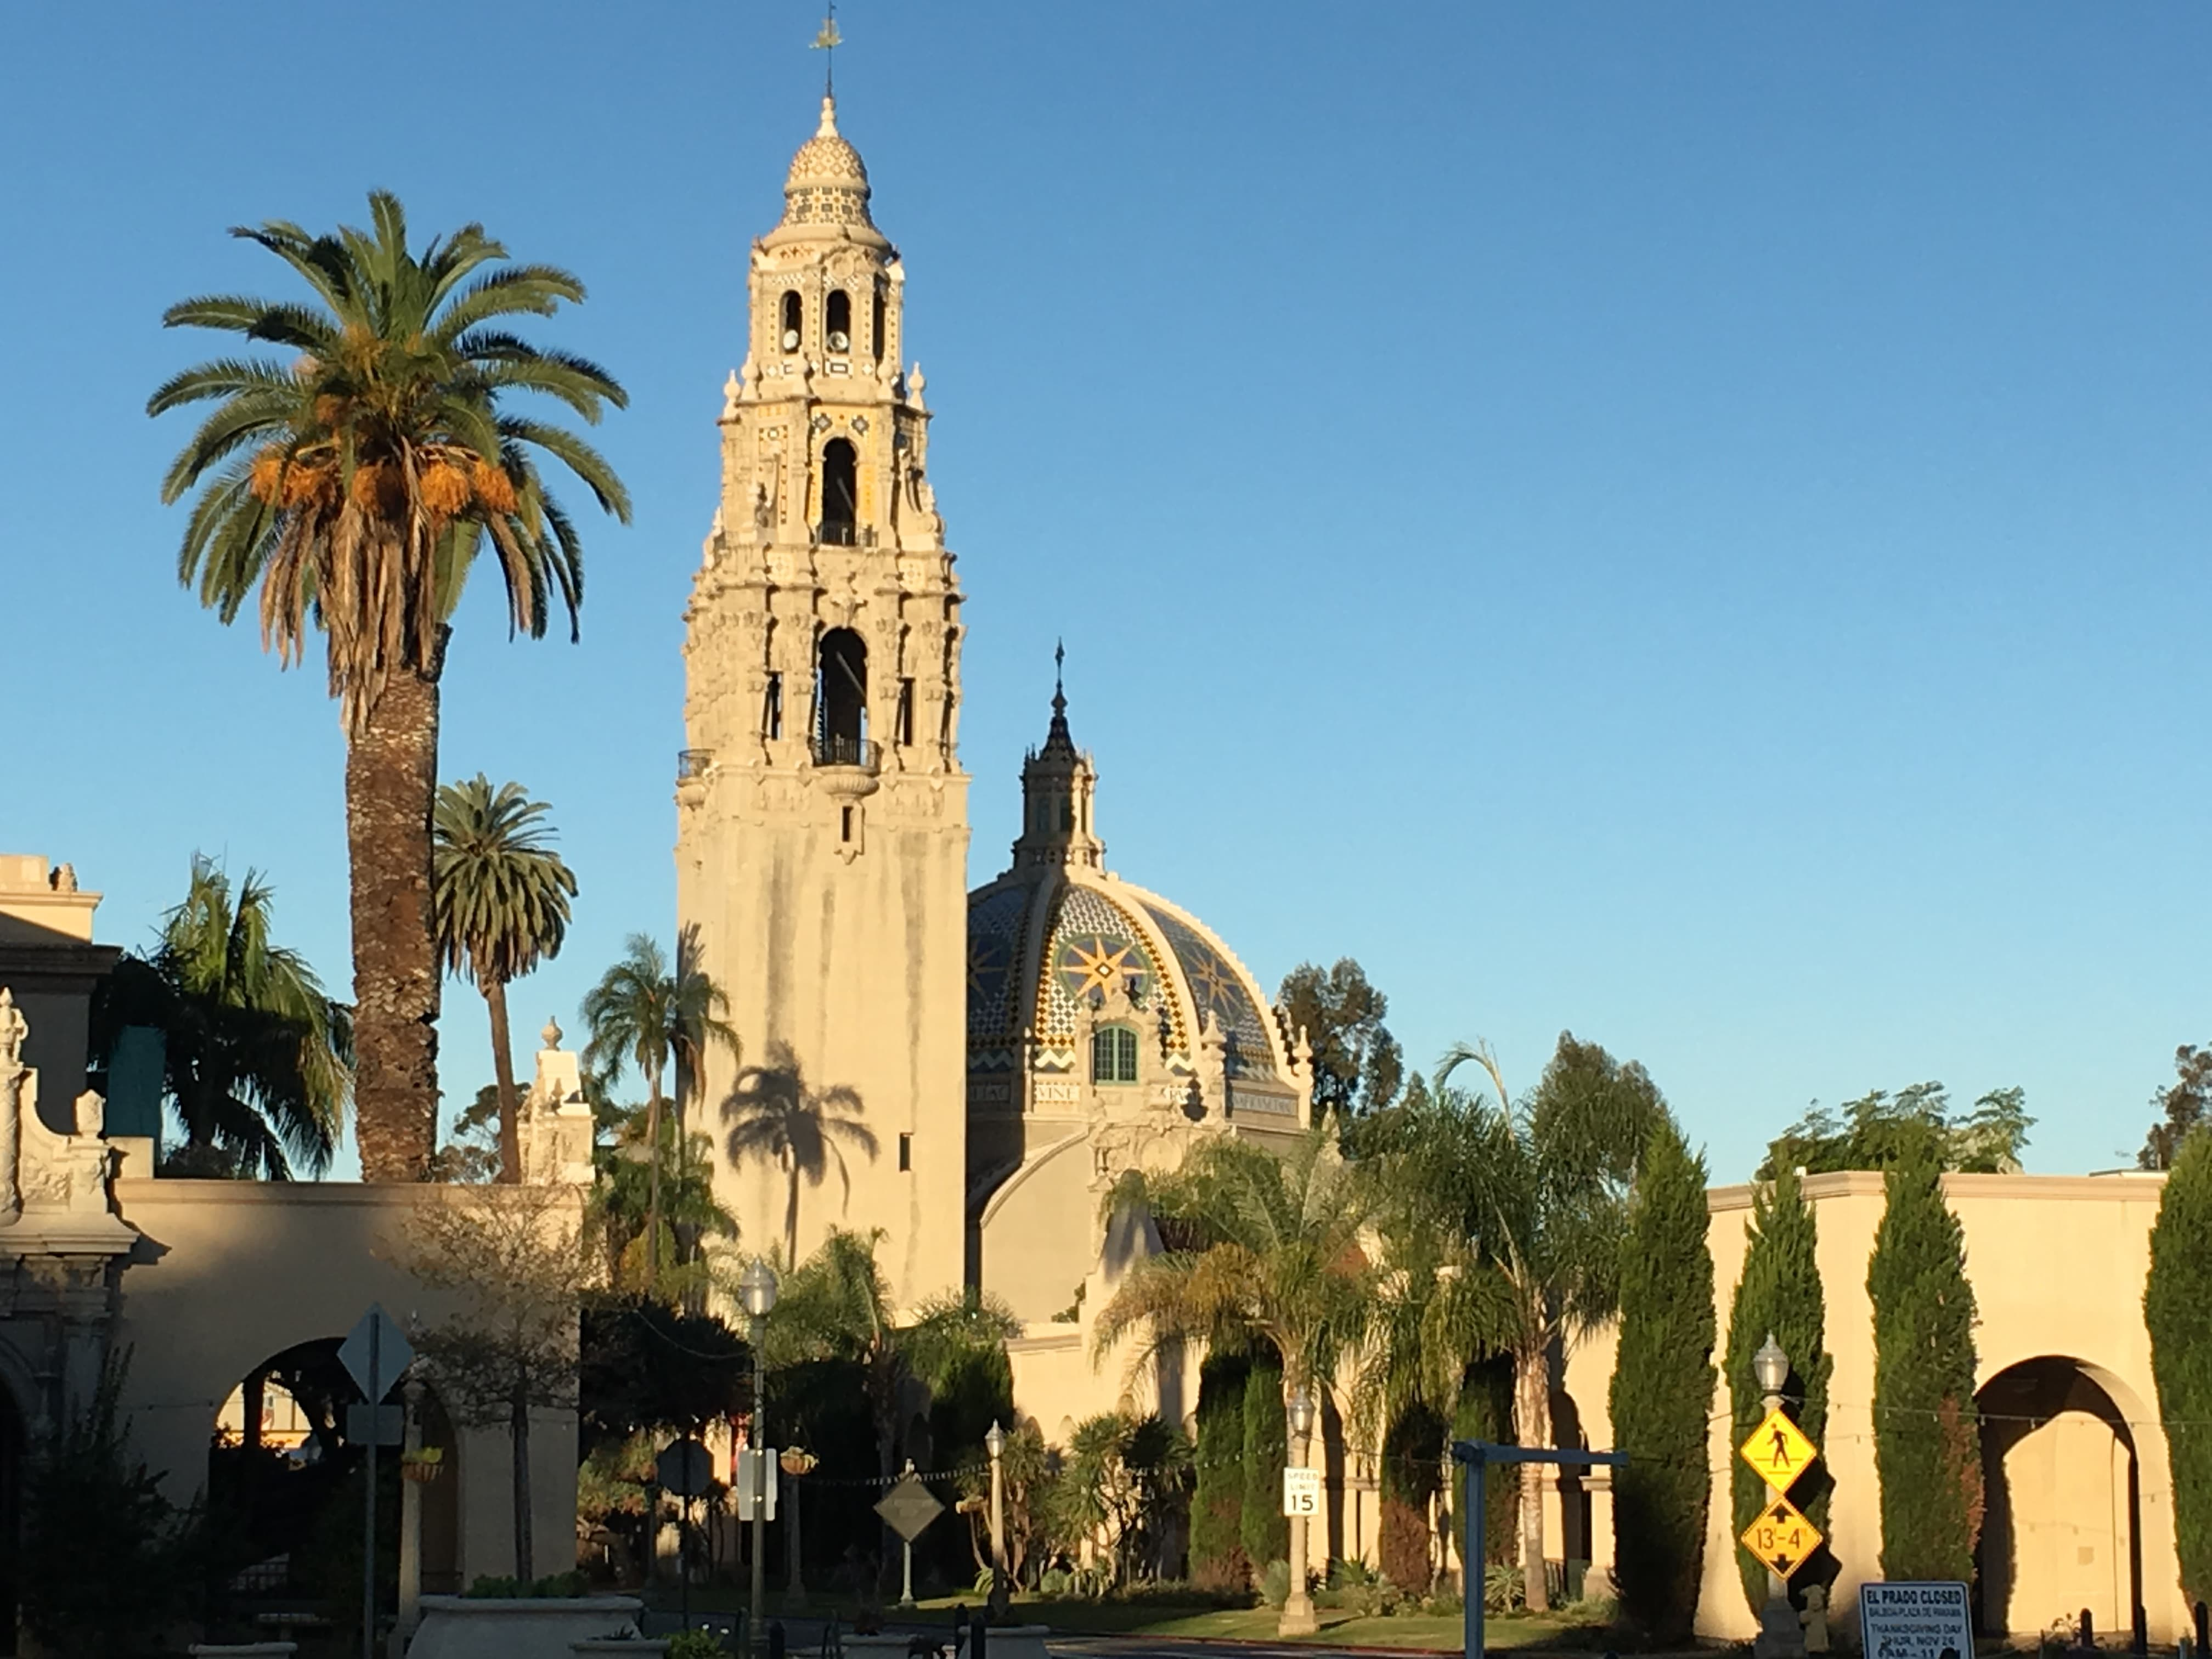 Old Town San Diego State Historic Park San Diego, Things to do in Balboa Park San Diego with Kids | Hilton Mom Voyage